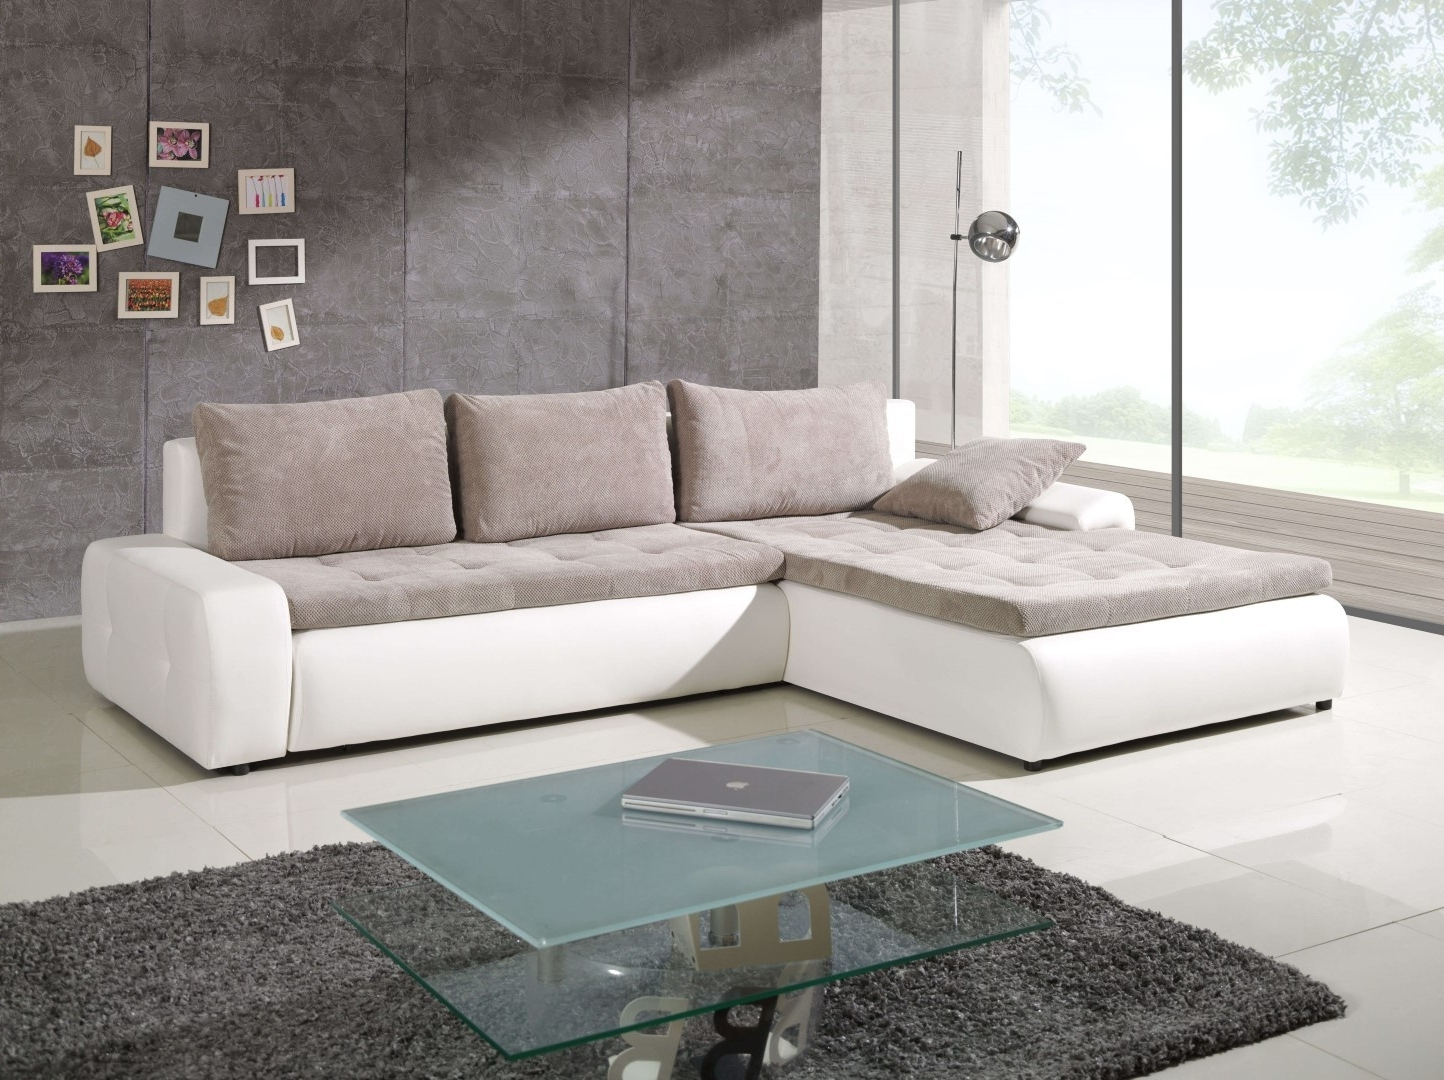 Sectional Sofas With Storage Regarding Most Up To Date Shop Galileo Sectional Sleeper Sofa With Storage Universal (View 2 of 20)